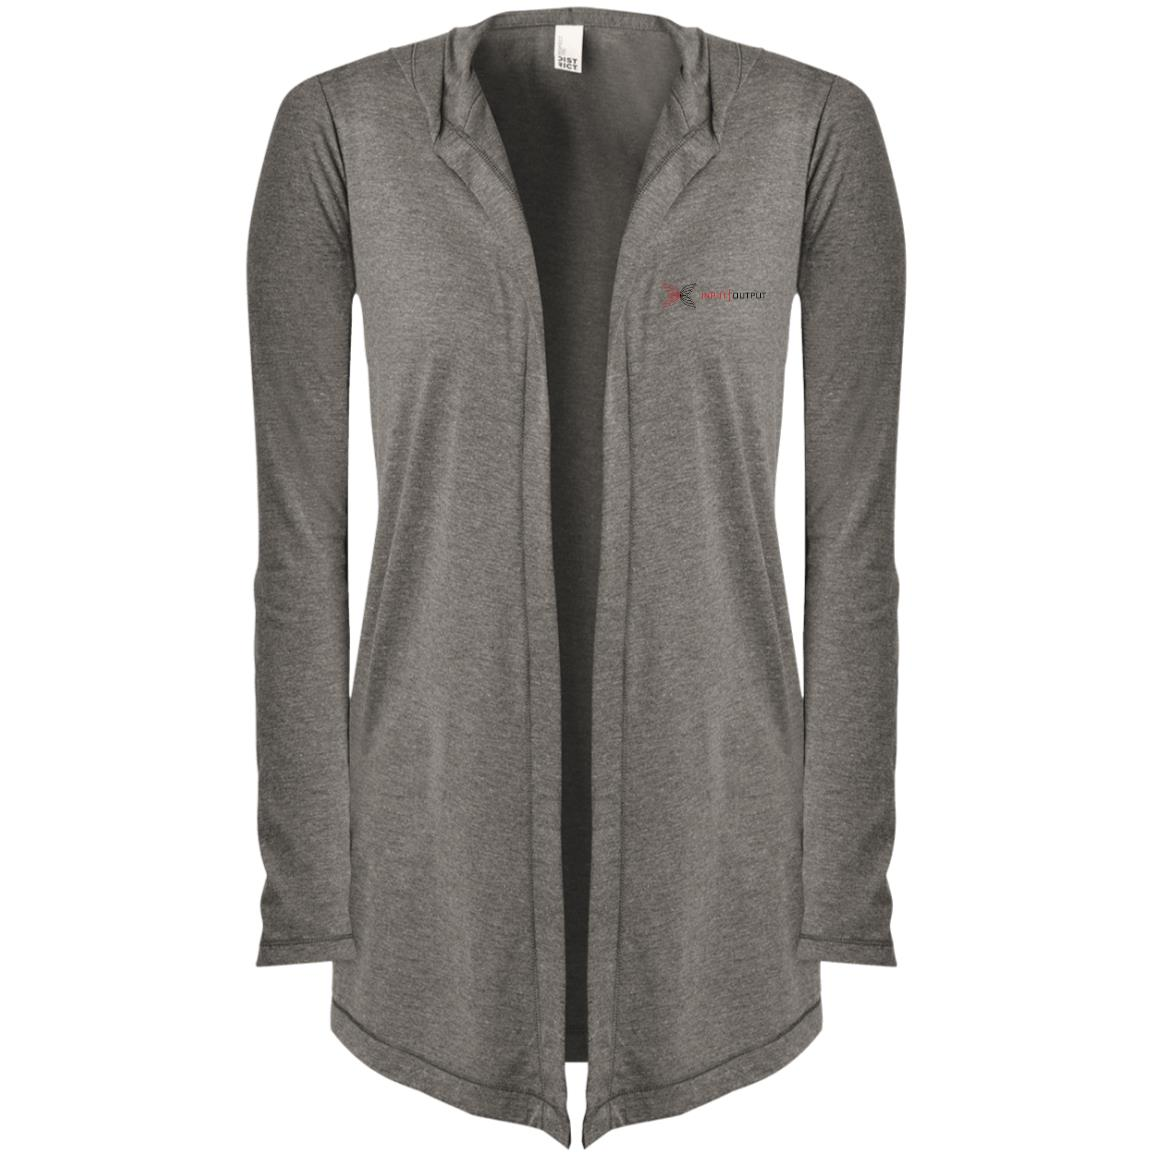 IOG Women's Hooded Cardigan